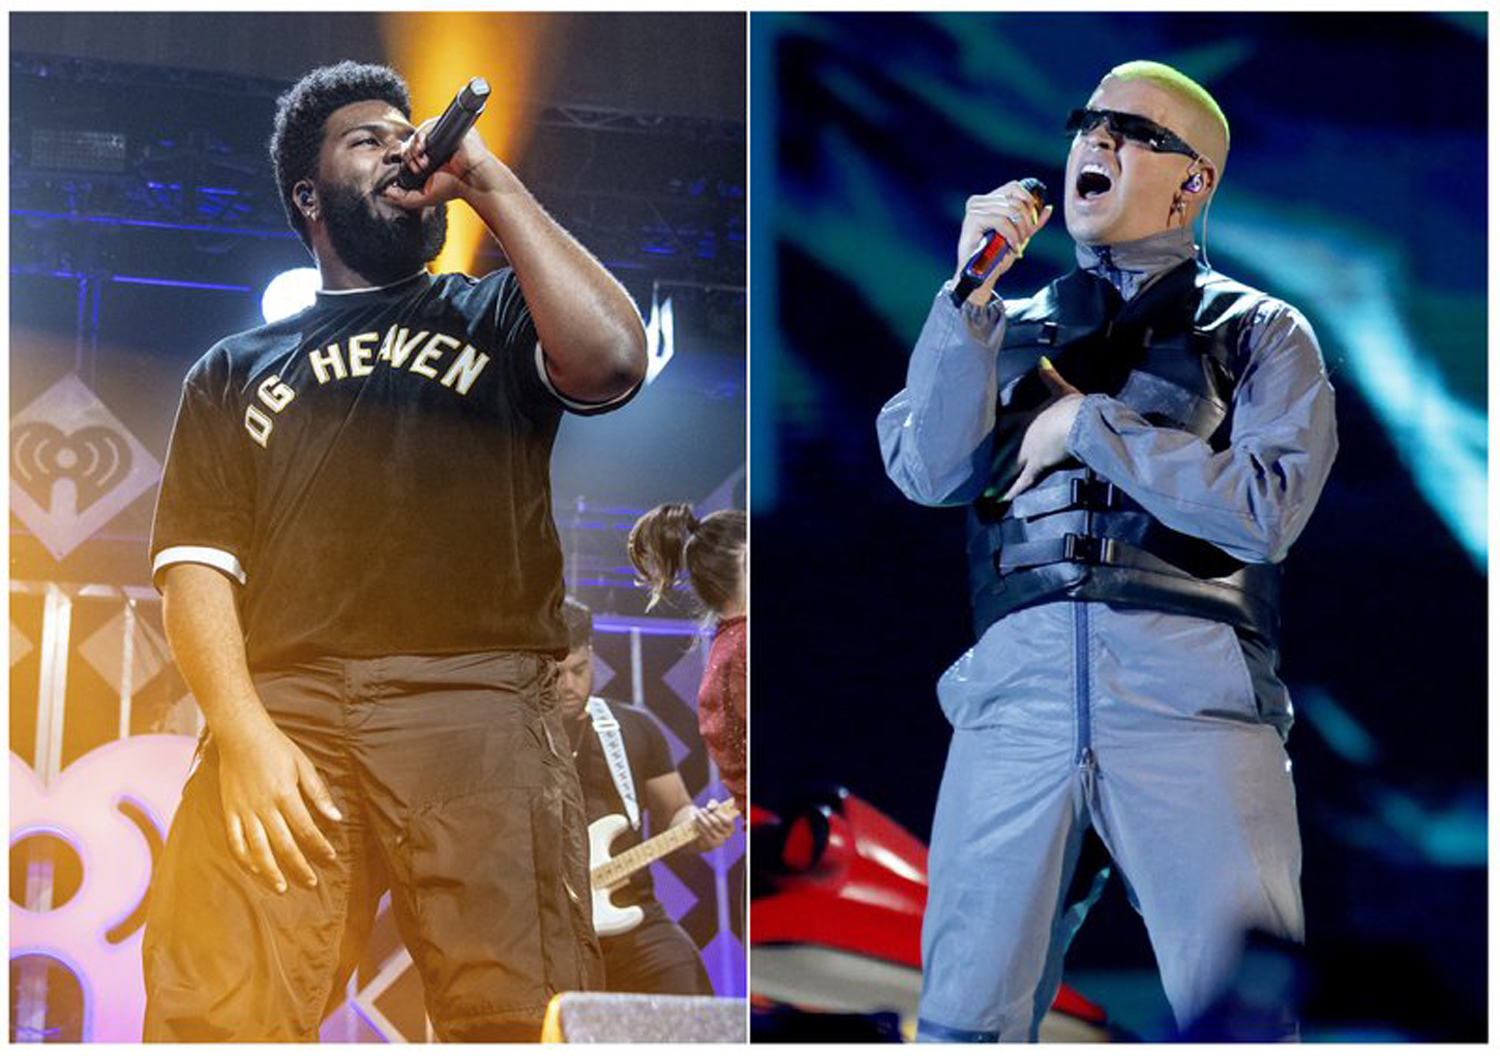 """Khalid (left) performing last December in Sunrise, Florida, and Bad Bunny at the Billboard Latin Music Awards in Las Vegas on April 25. They're among the performers who'll be part of Apple Music's """"Up Next Live"""" tour."""